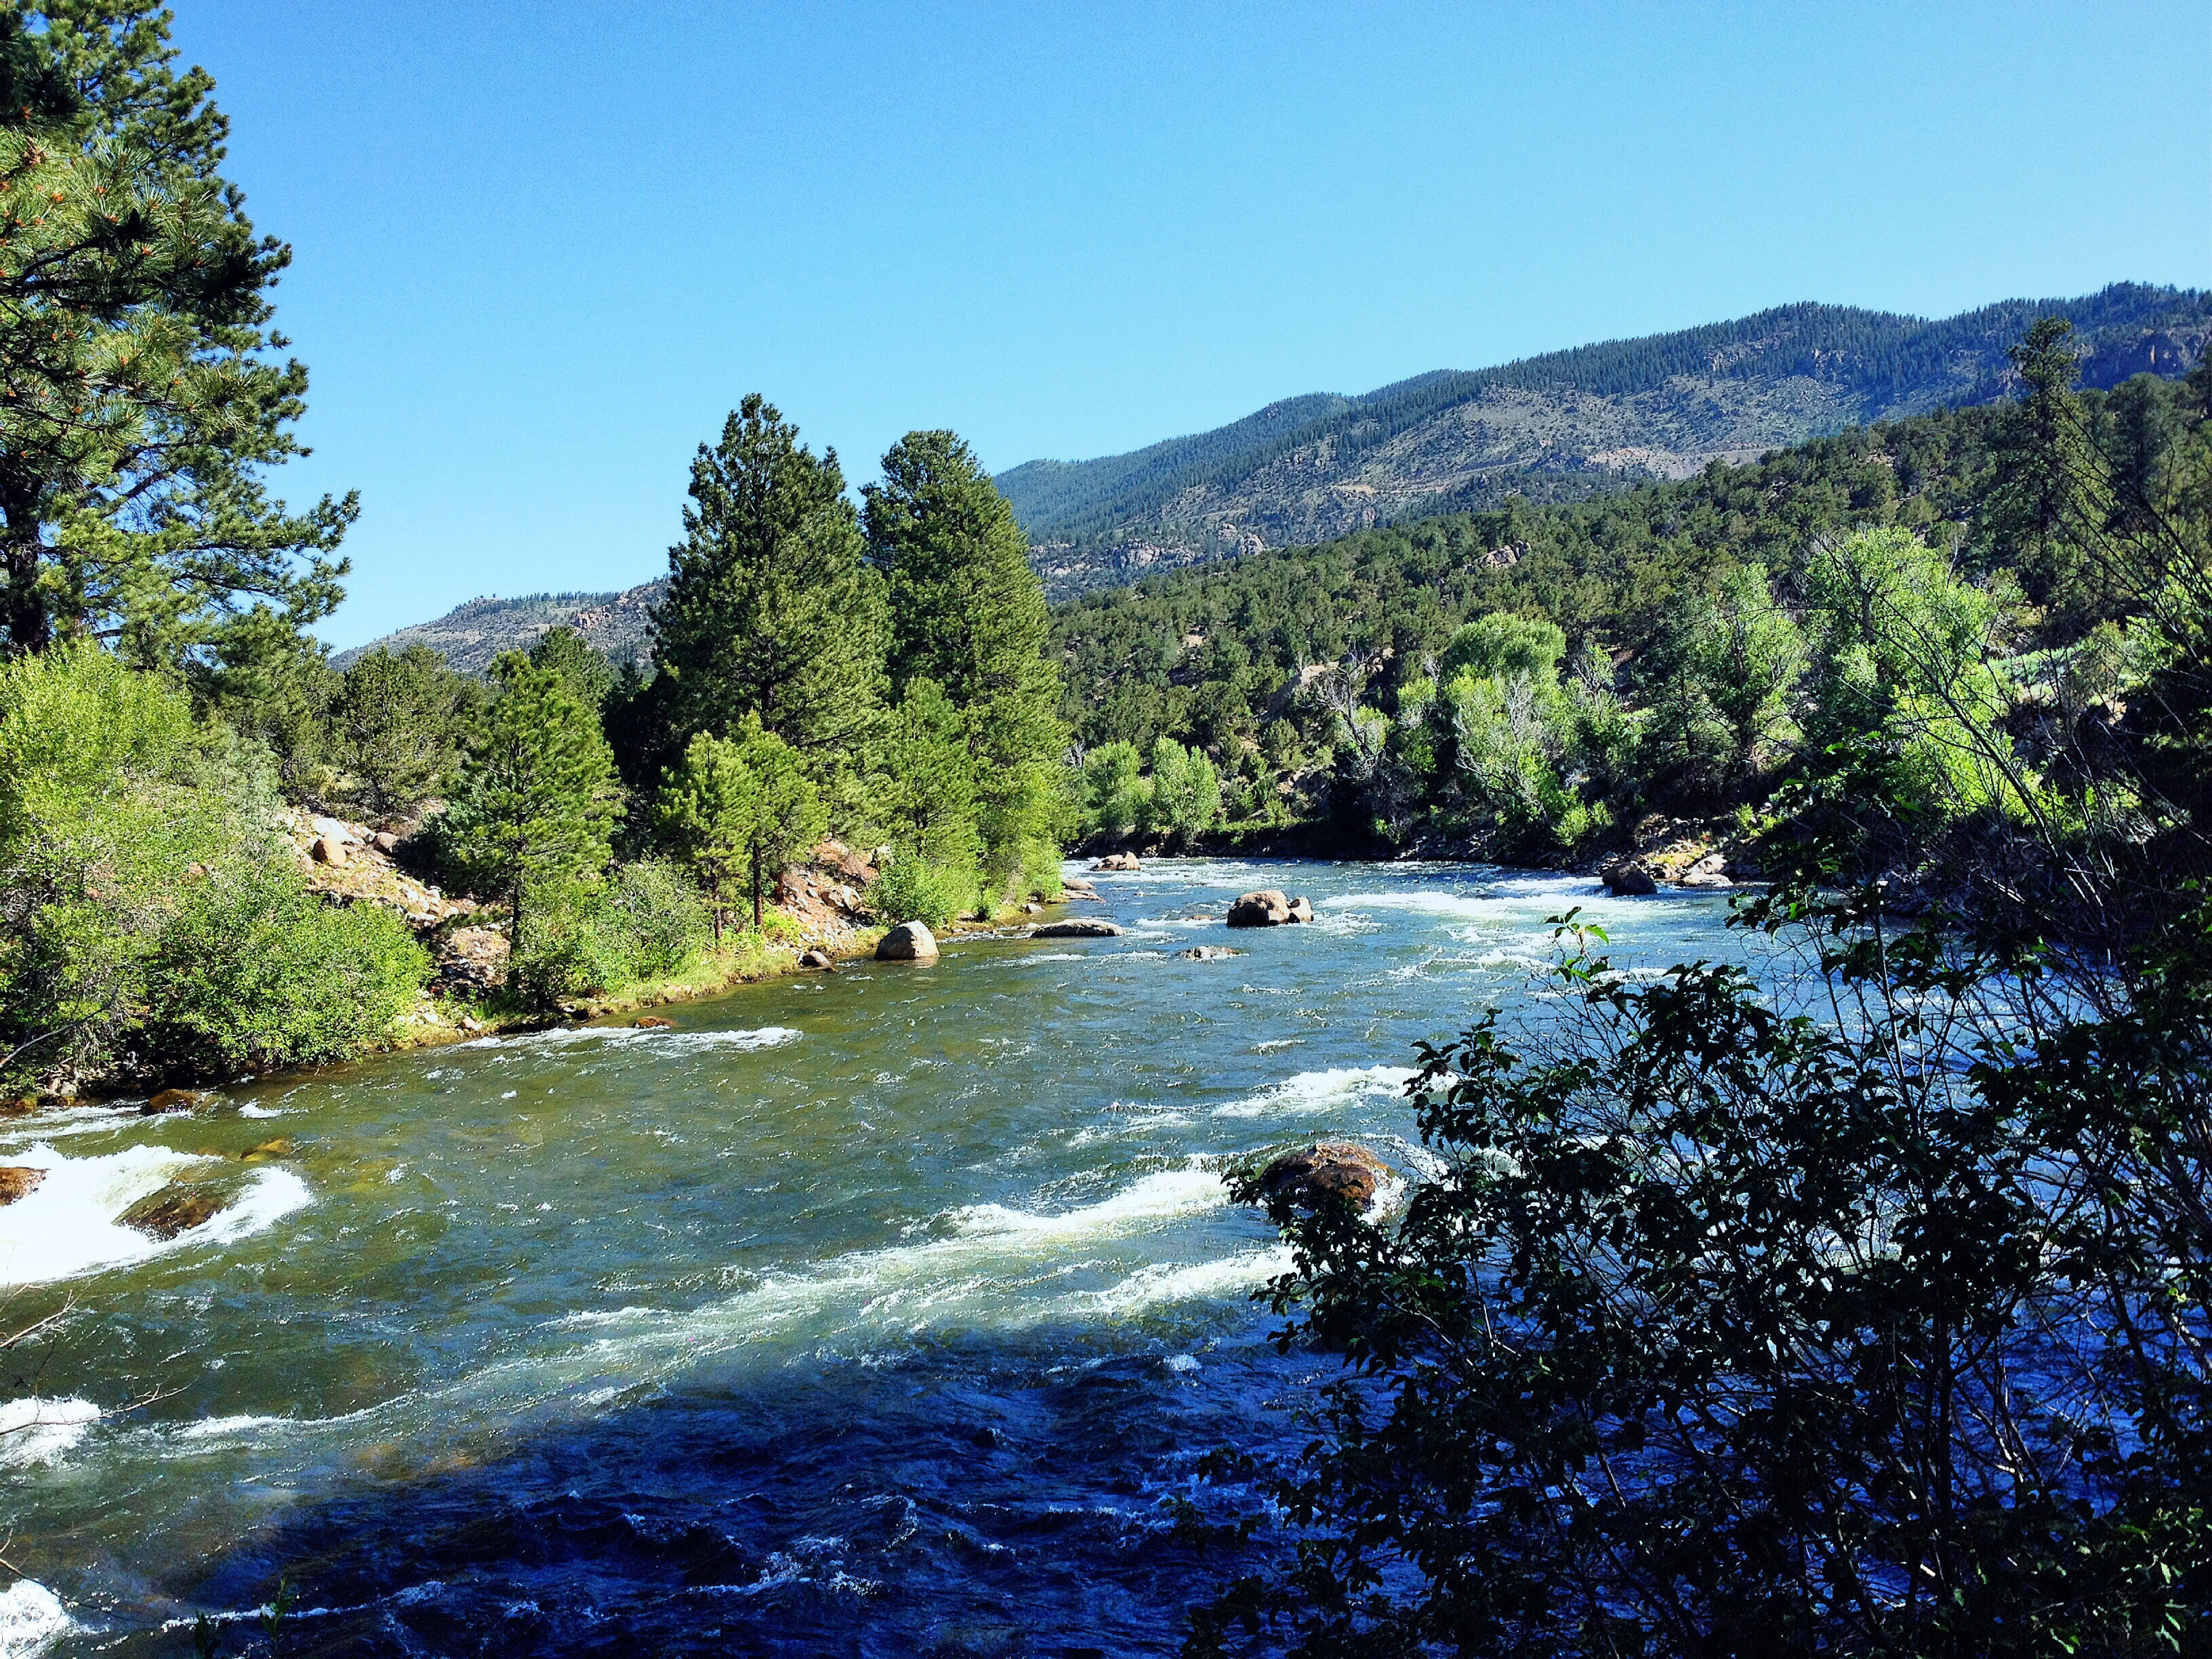 arkansas river, arkansas headwaters, colorado